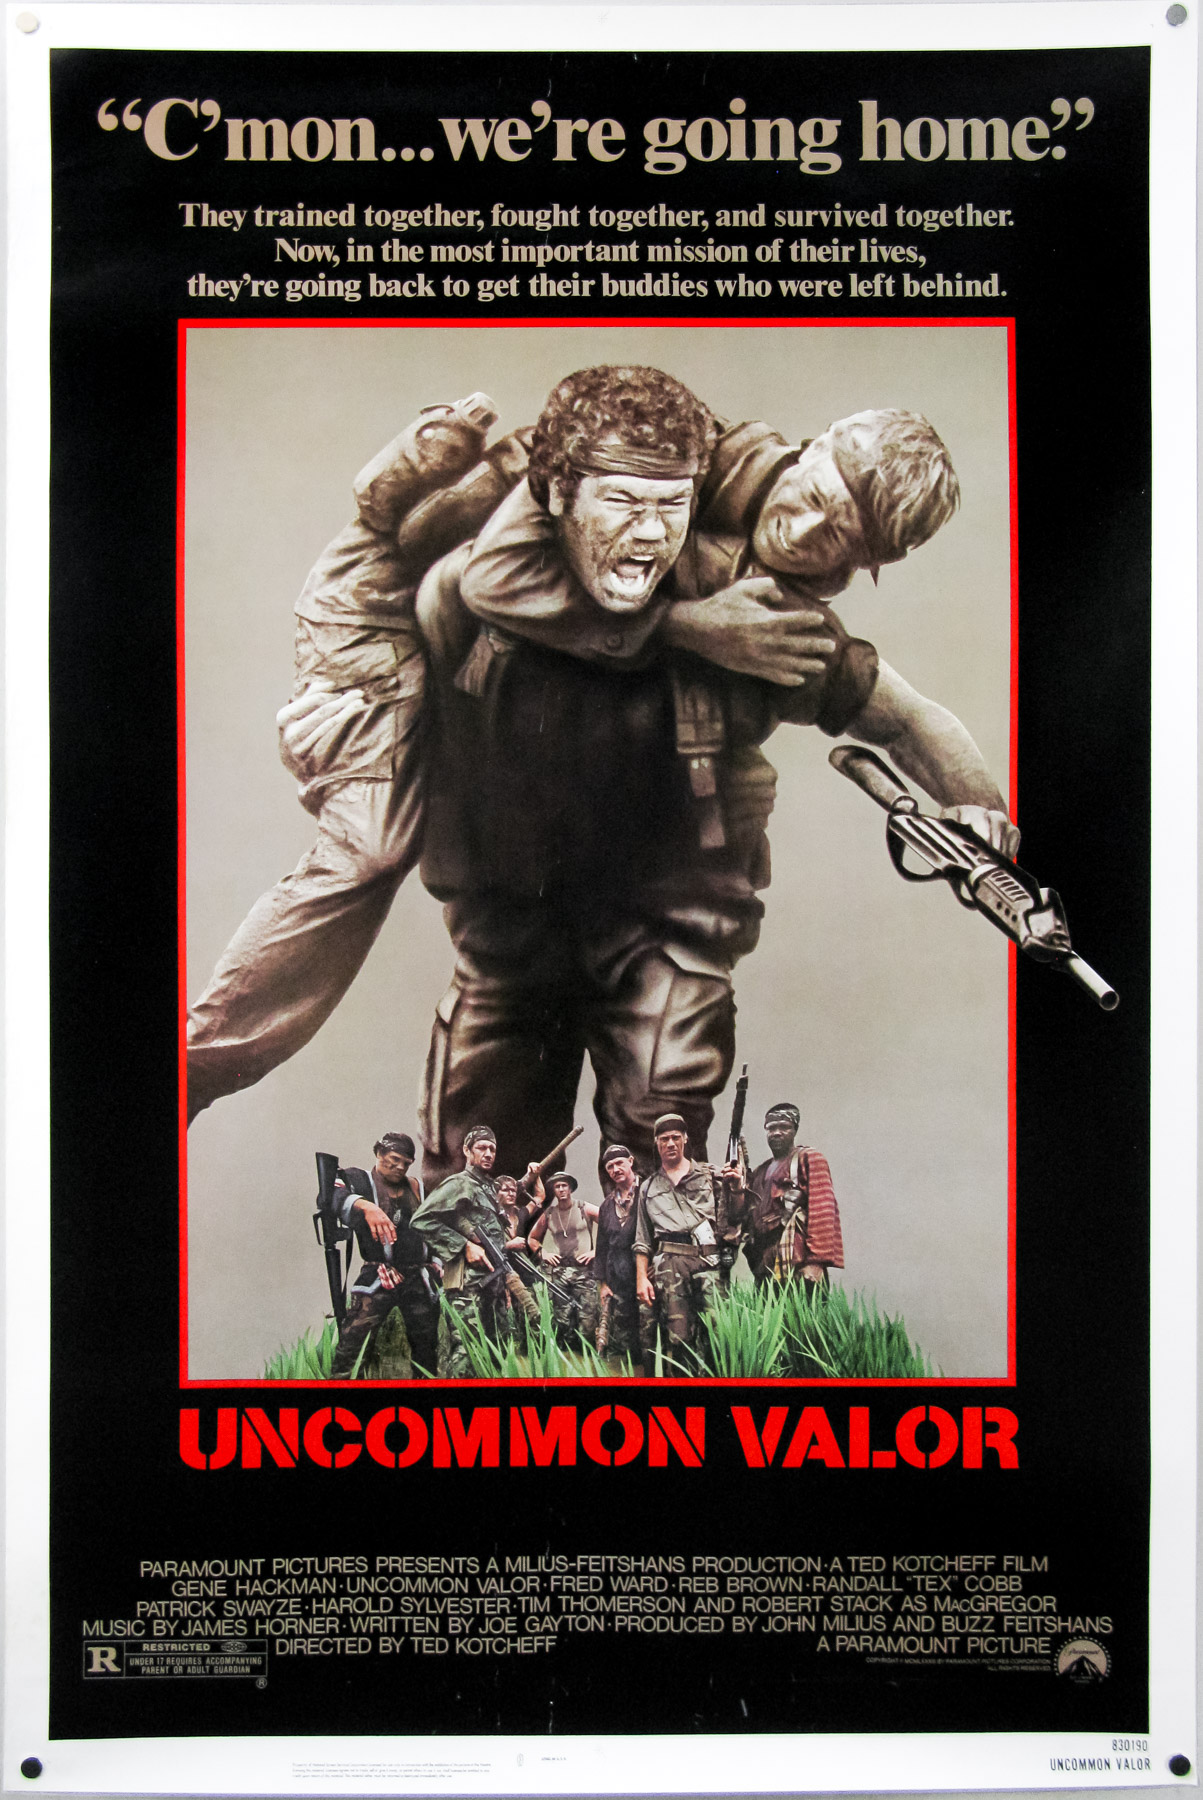 Uncommon Valor (1983) - Directed by: Ted KotcheffStarring: Gene Hackman, Patrick Swayze, Robert Stack, Jan KaczmarekRated: RRunning Time: 1 h 45 mTMM Score: 2 stars out of 5STRENGTHS: Some Action, Gene HackmanWEAKNESSES: Acting, Formulaic and Predictable Plot, Directing, Editing, Production Design